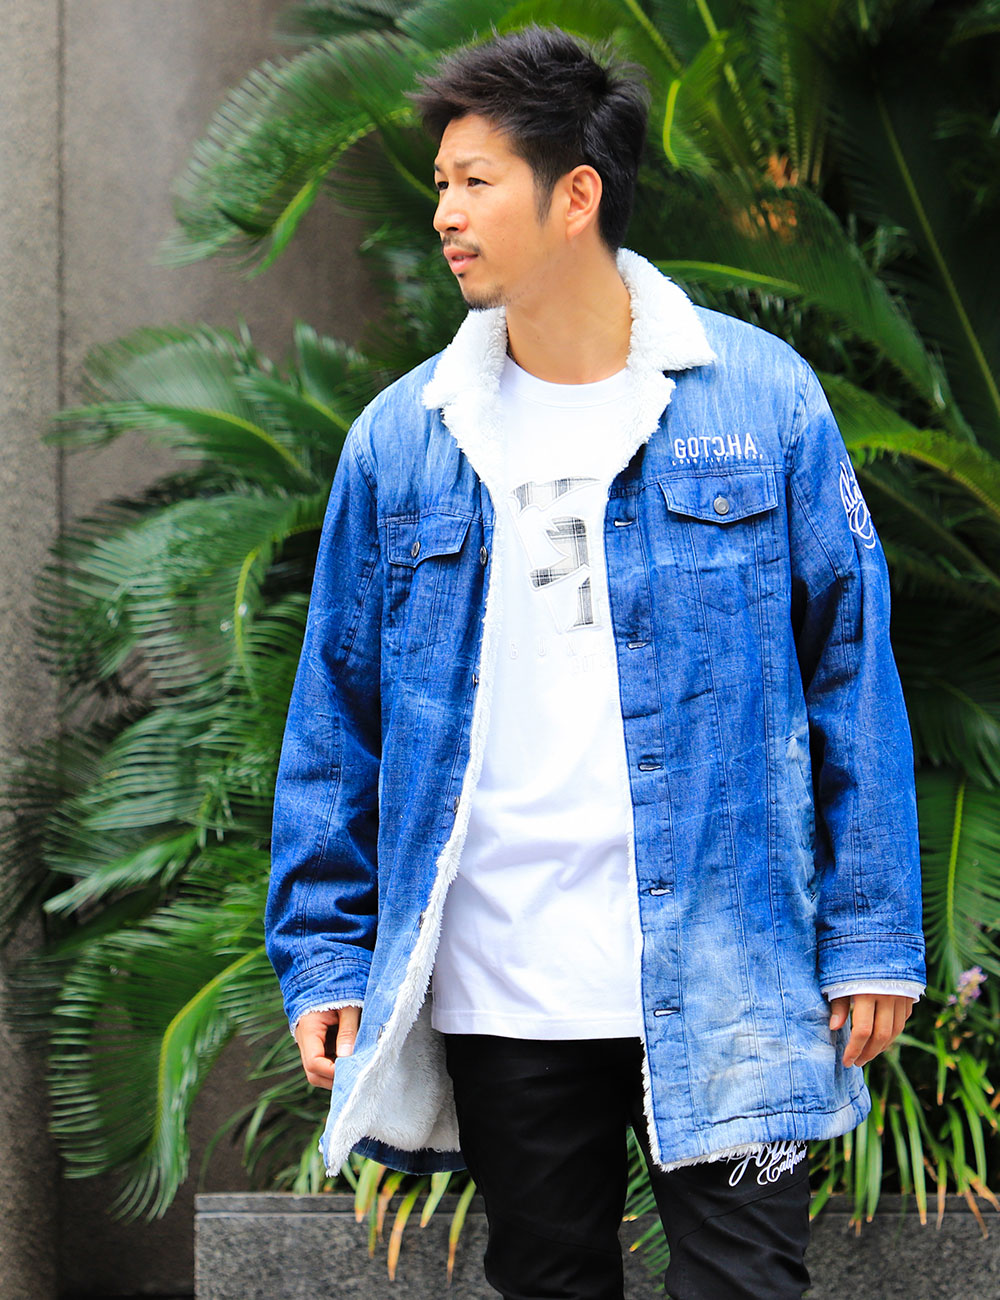 g_2020outer